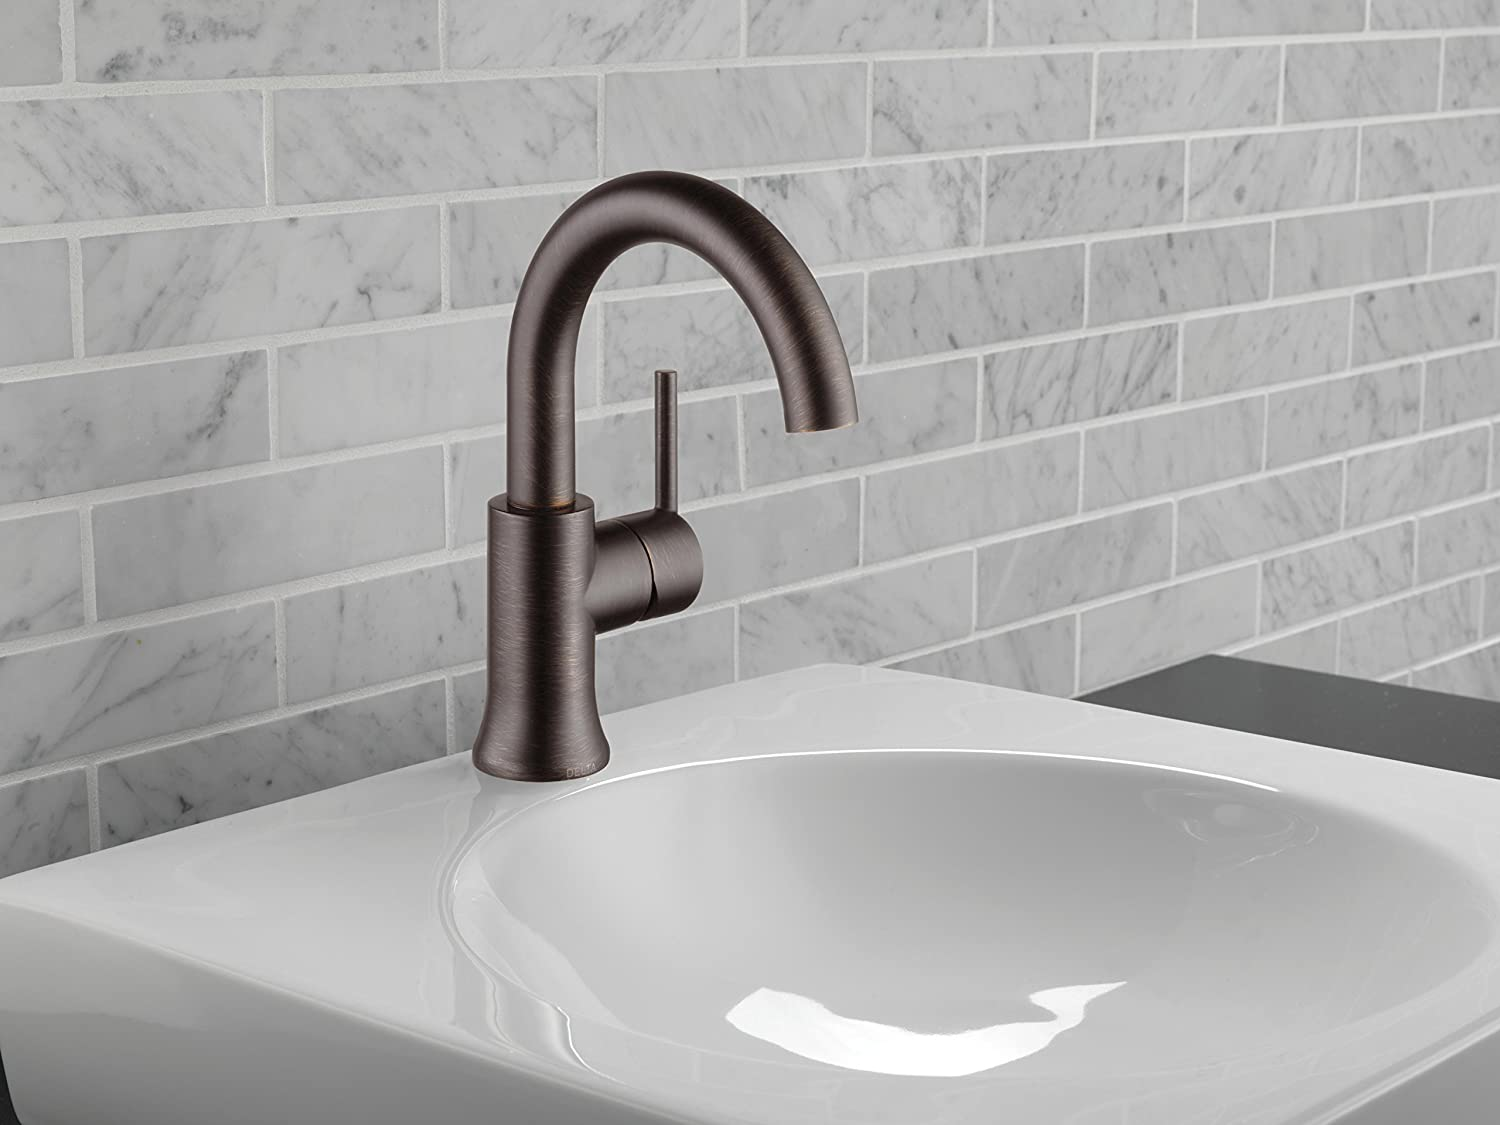 trim category bathroom all trinsic shower series mc soci delta product trio tub faucets and faucet